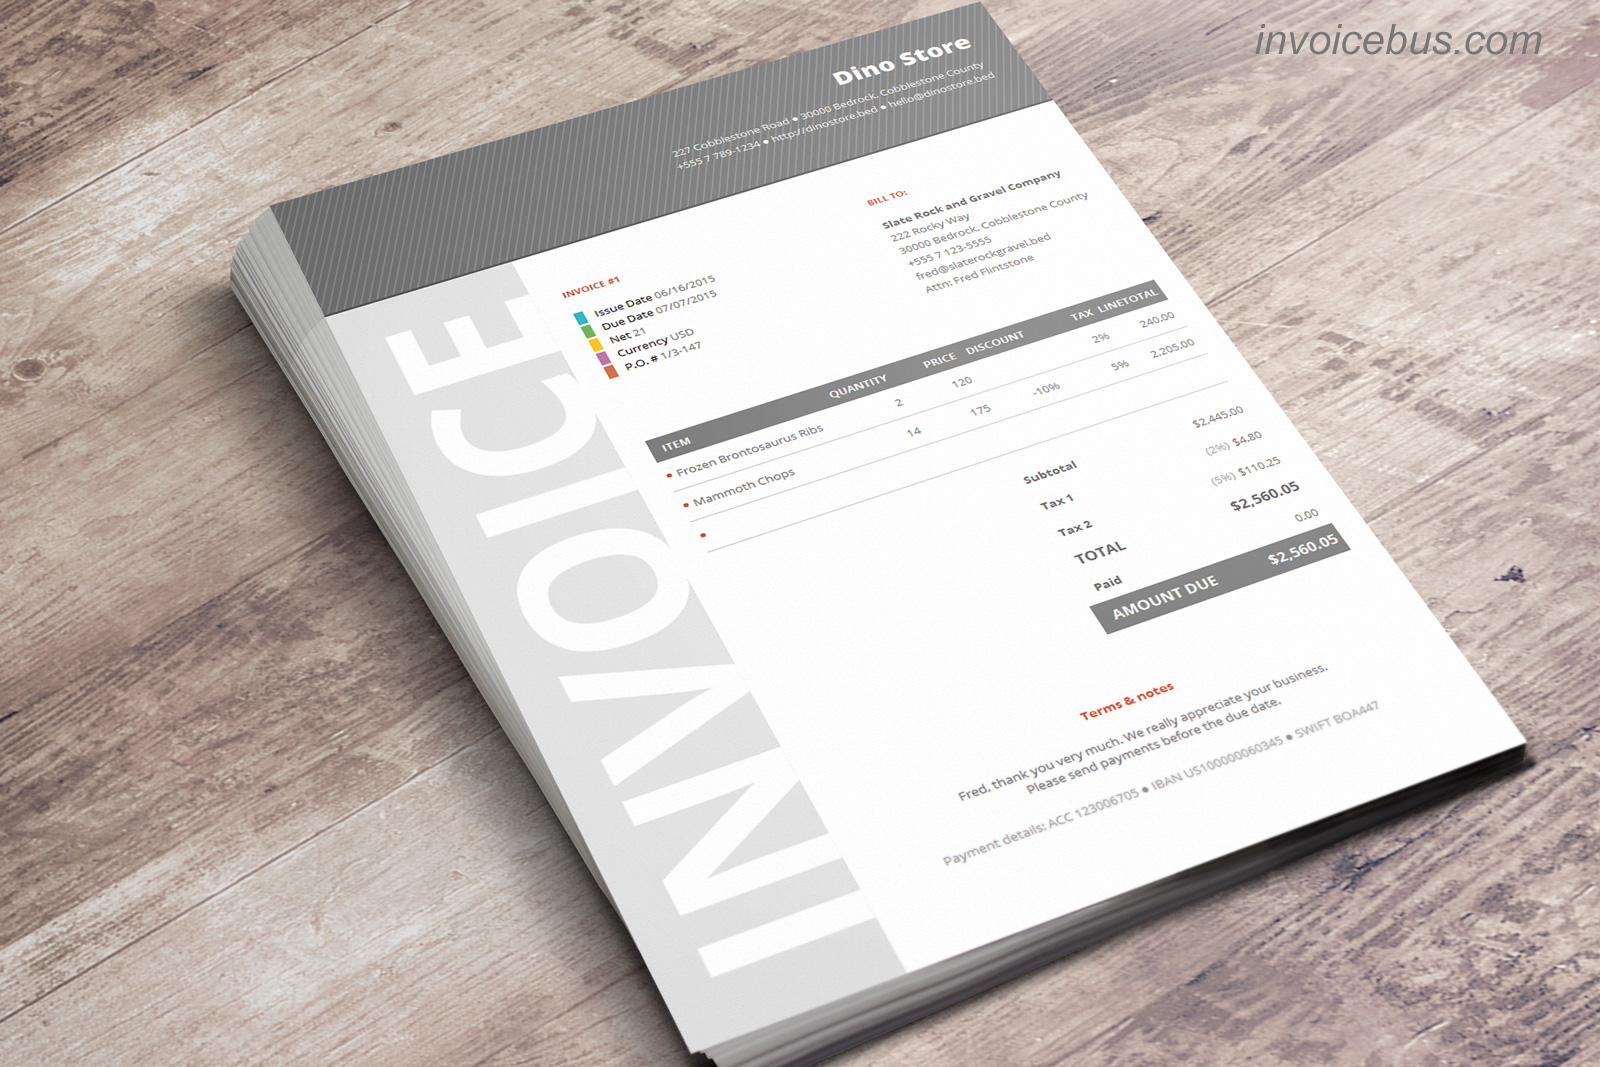 40+ Interactive Invoice Templates Screenshot